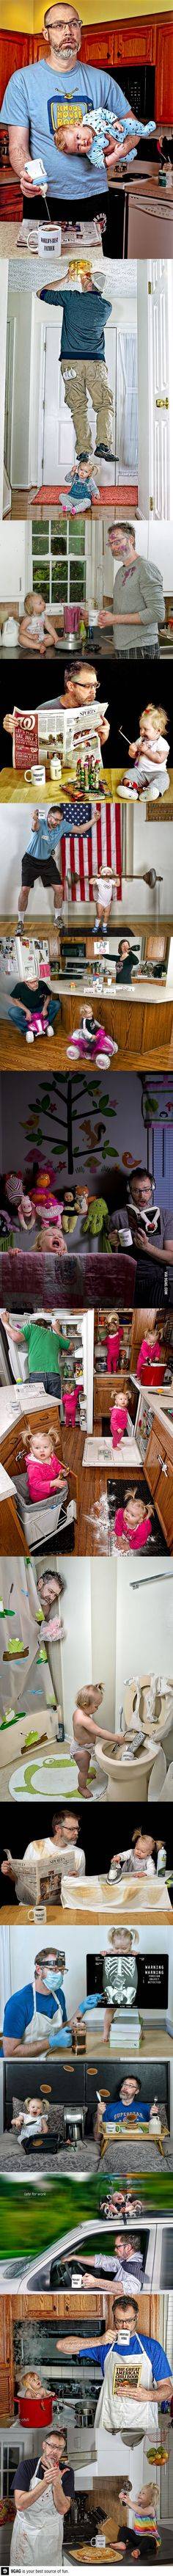 Fun pictures of the 'World's Best Father'...